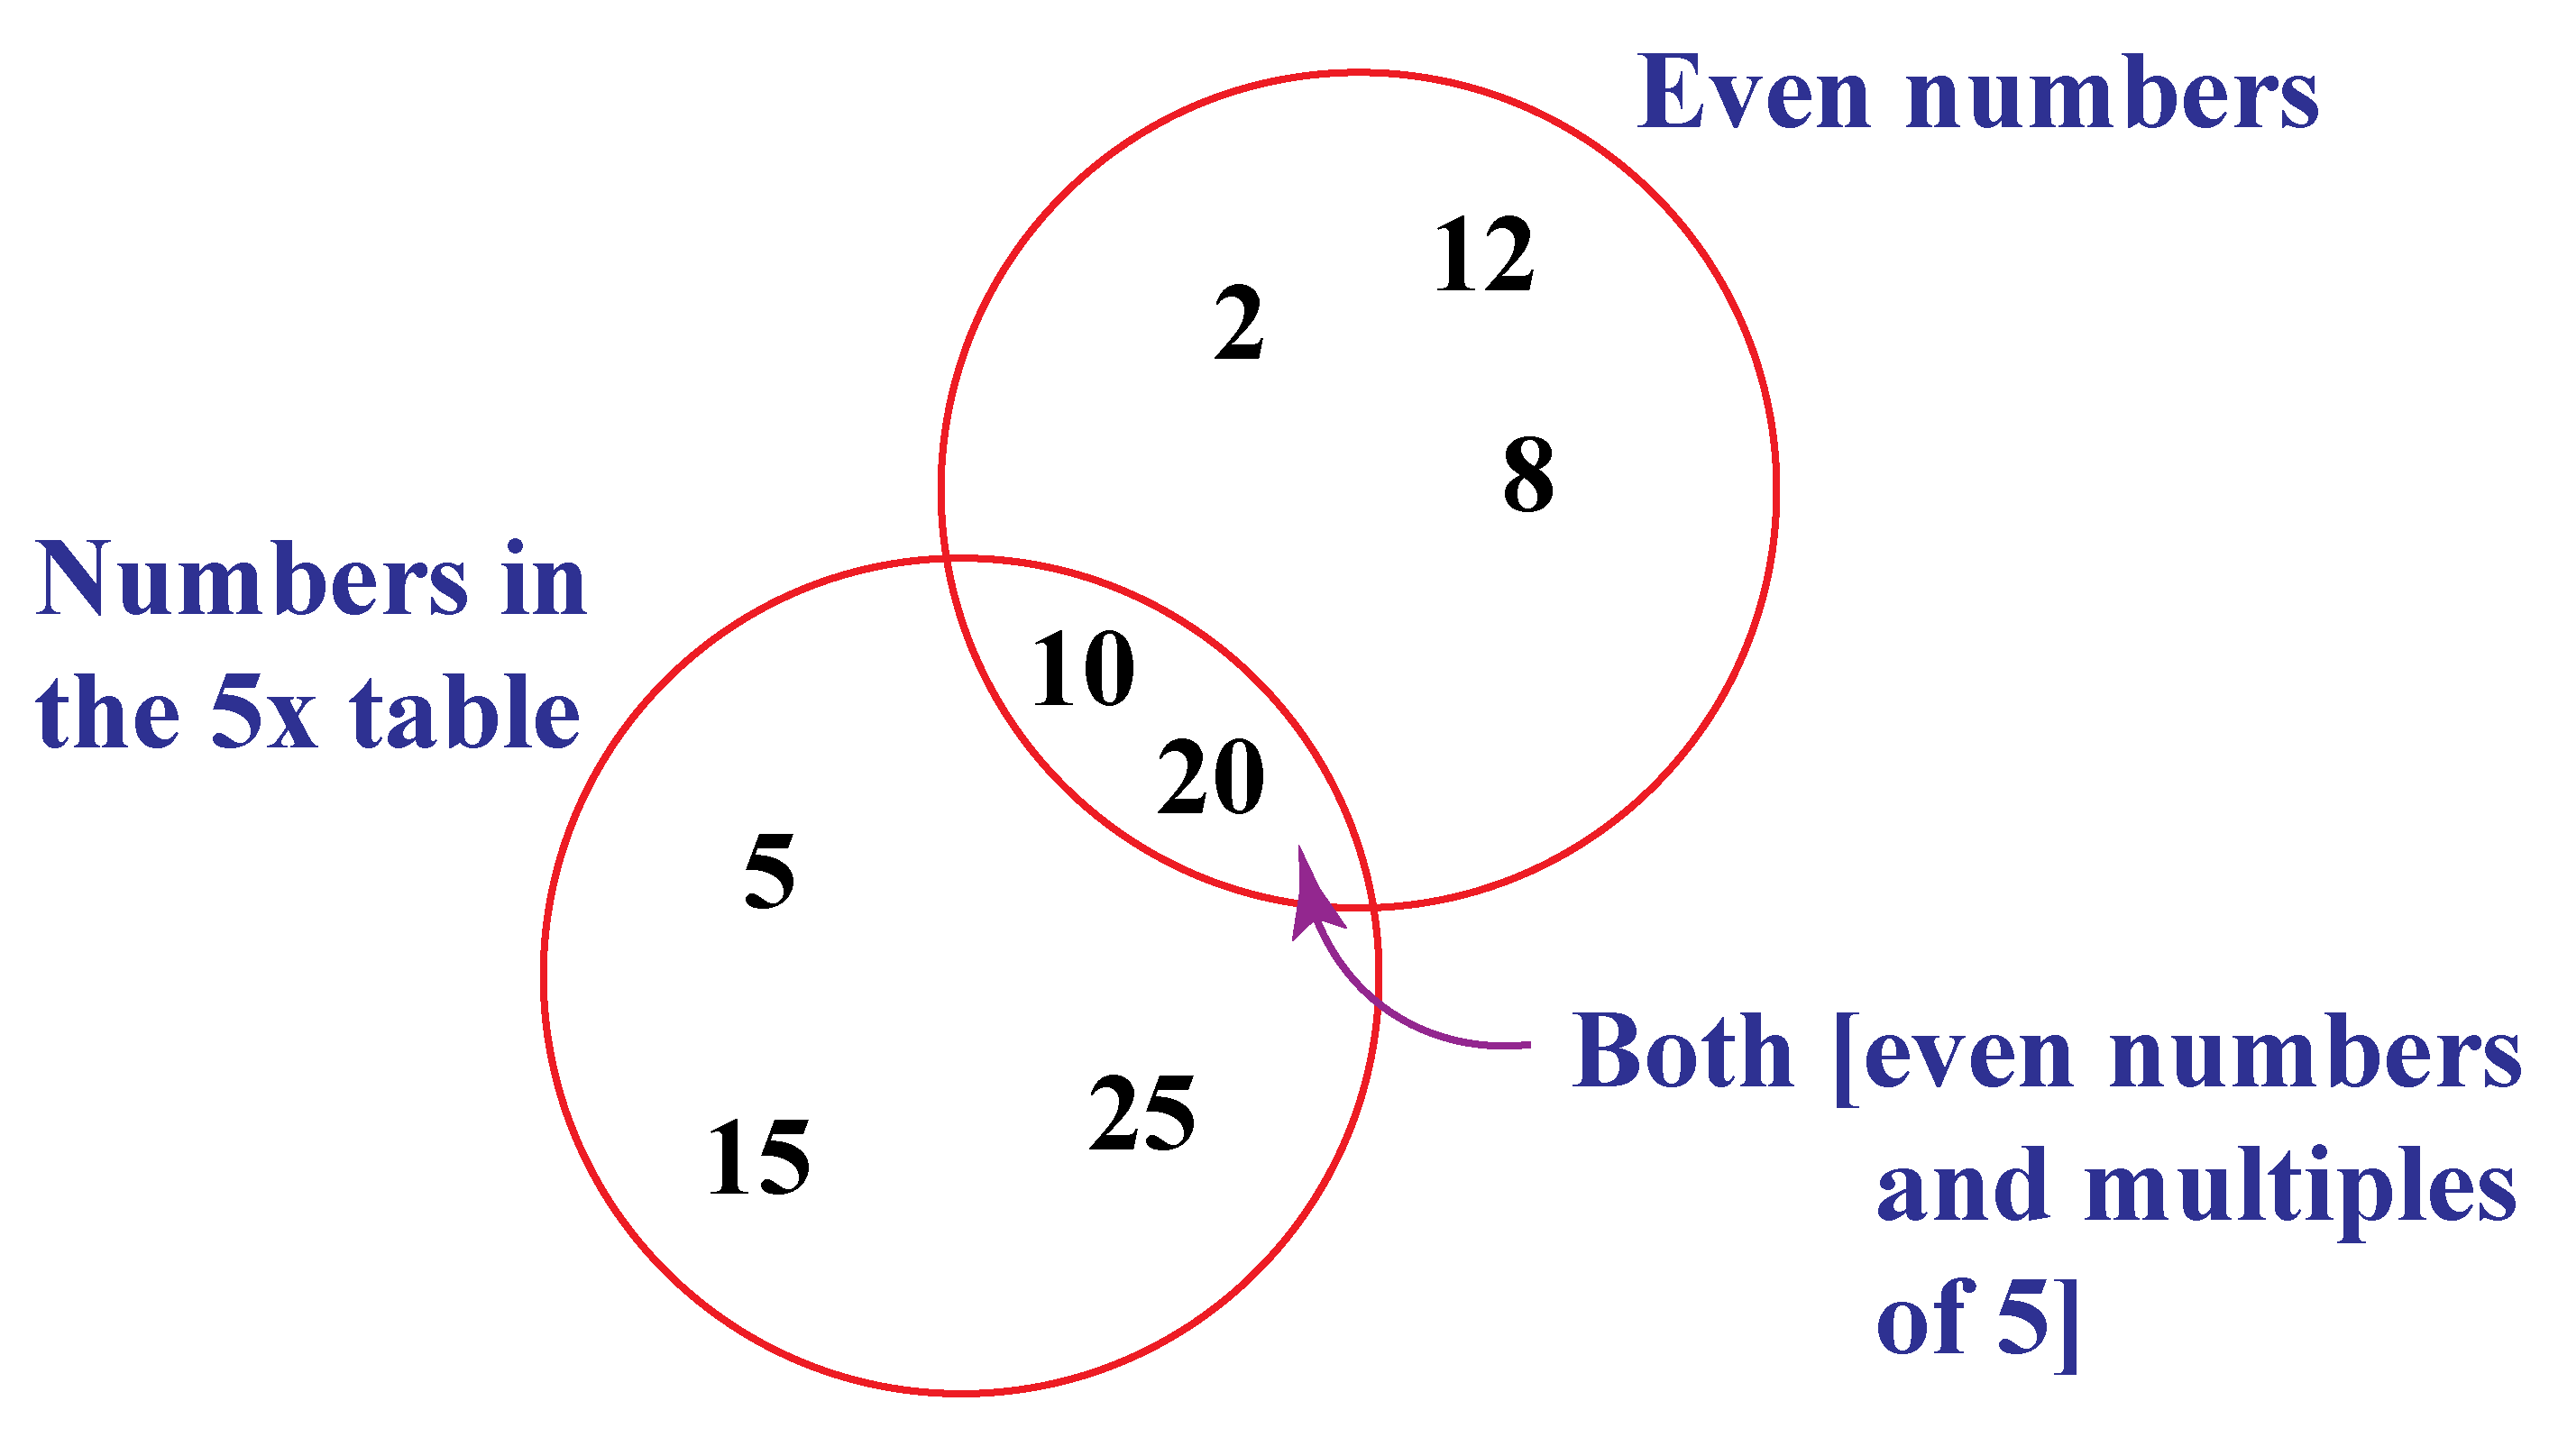 Venn diagram example of even numbers and numbers in the 5 table